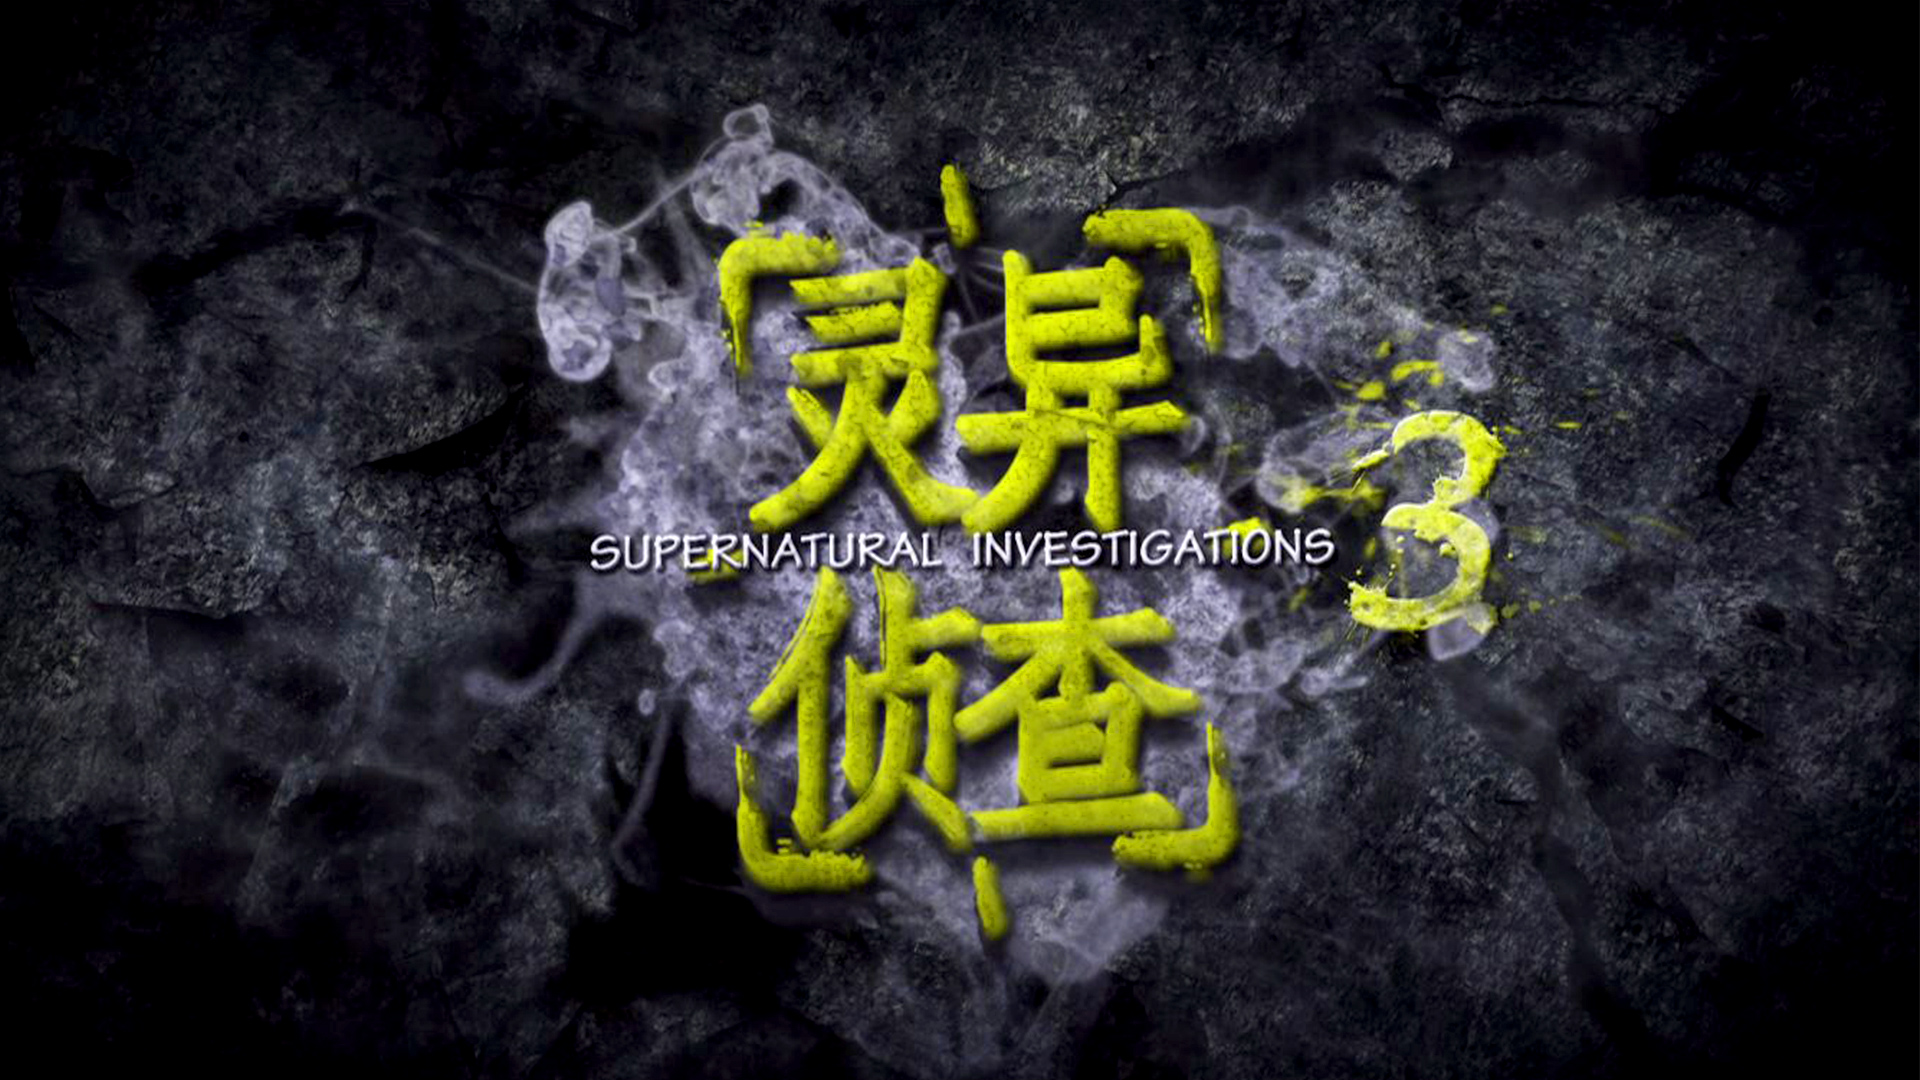 SUPERNATURAL INVESTIGATIONS III